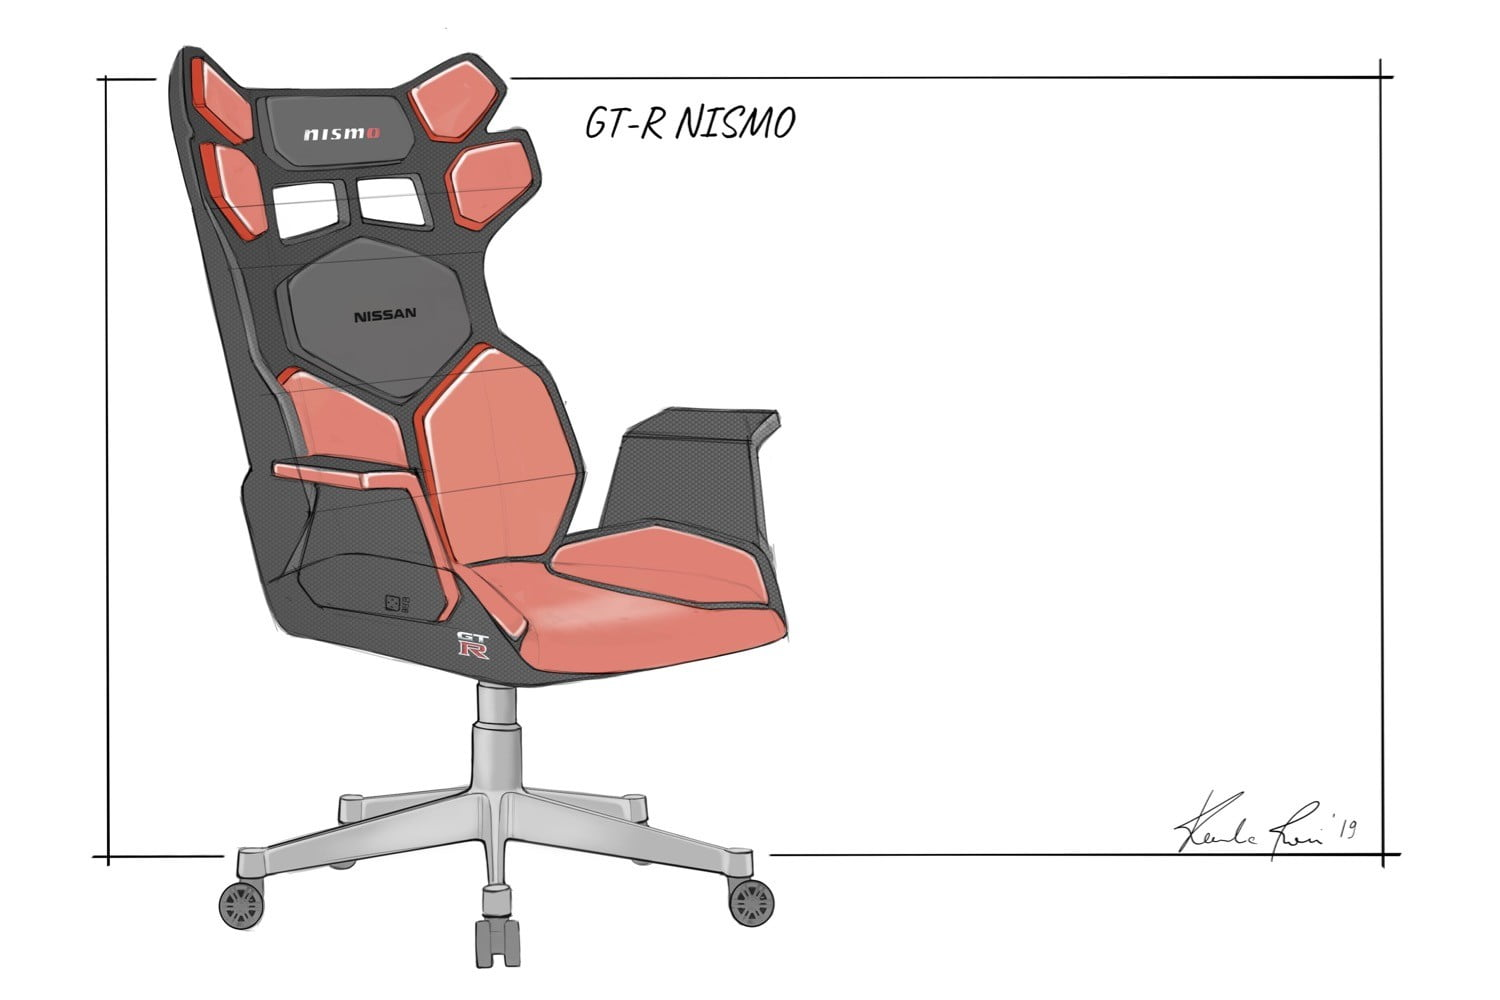 Nissan used its car seat design experience to create these cool gaming chairs